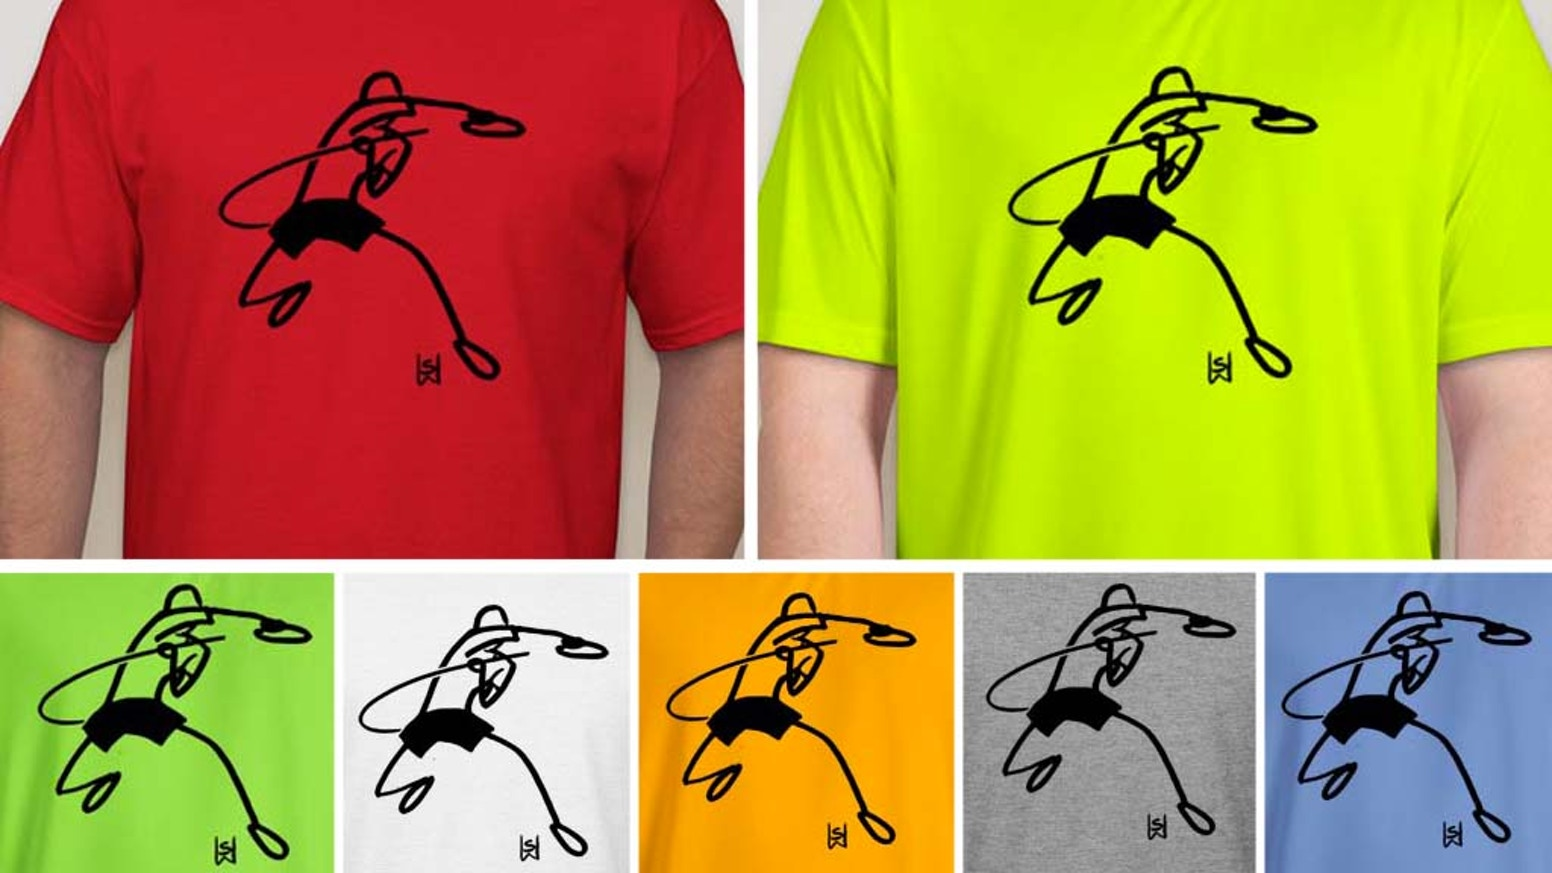 Table tennis stick figure T-shirt in many colors  Ping pong